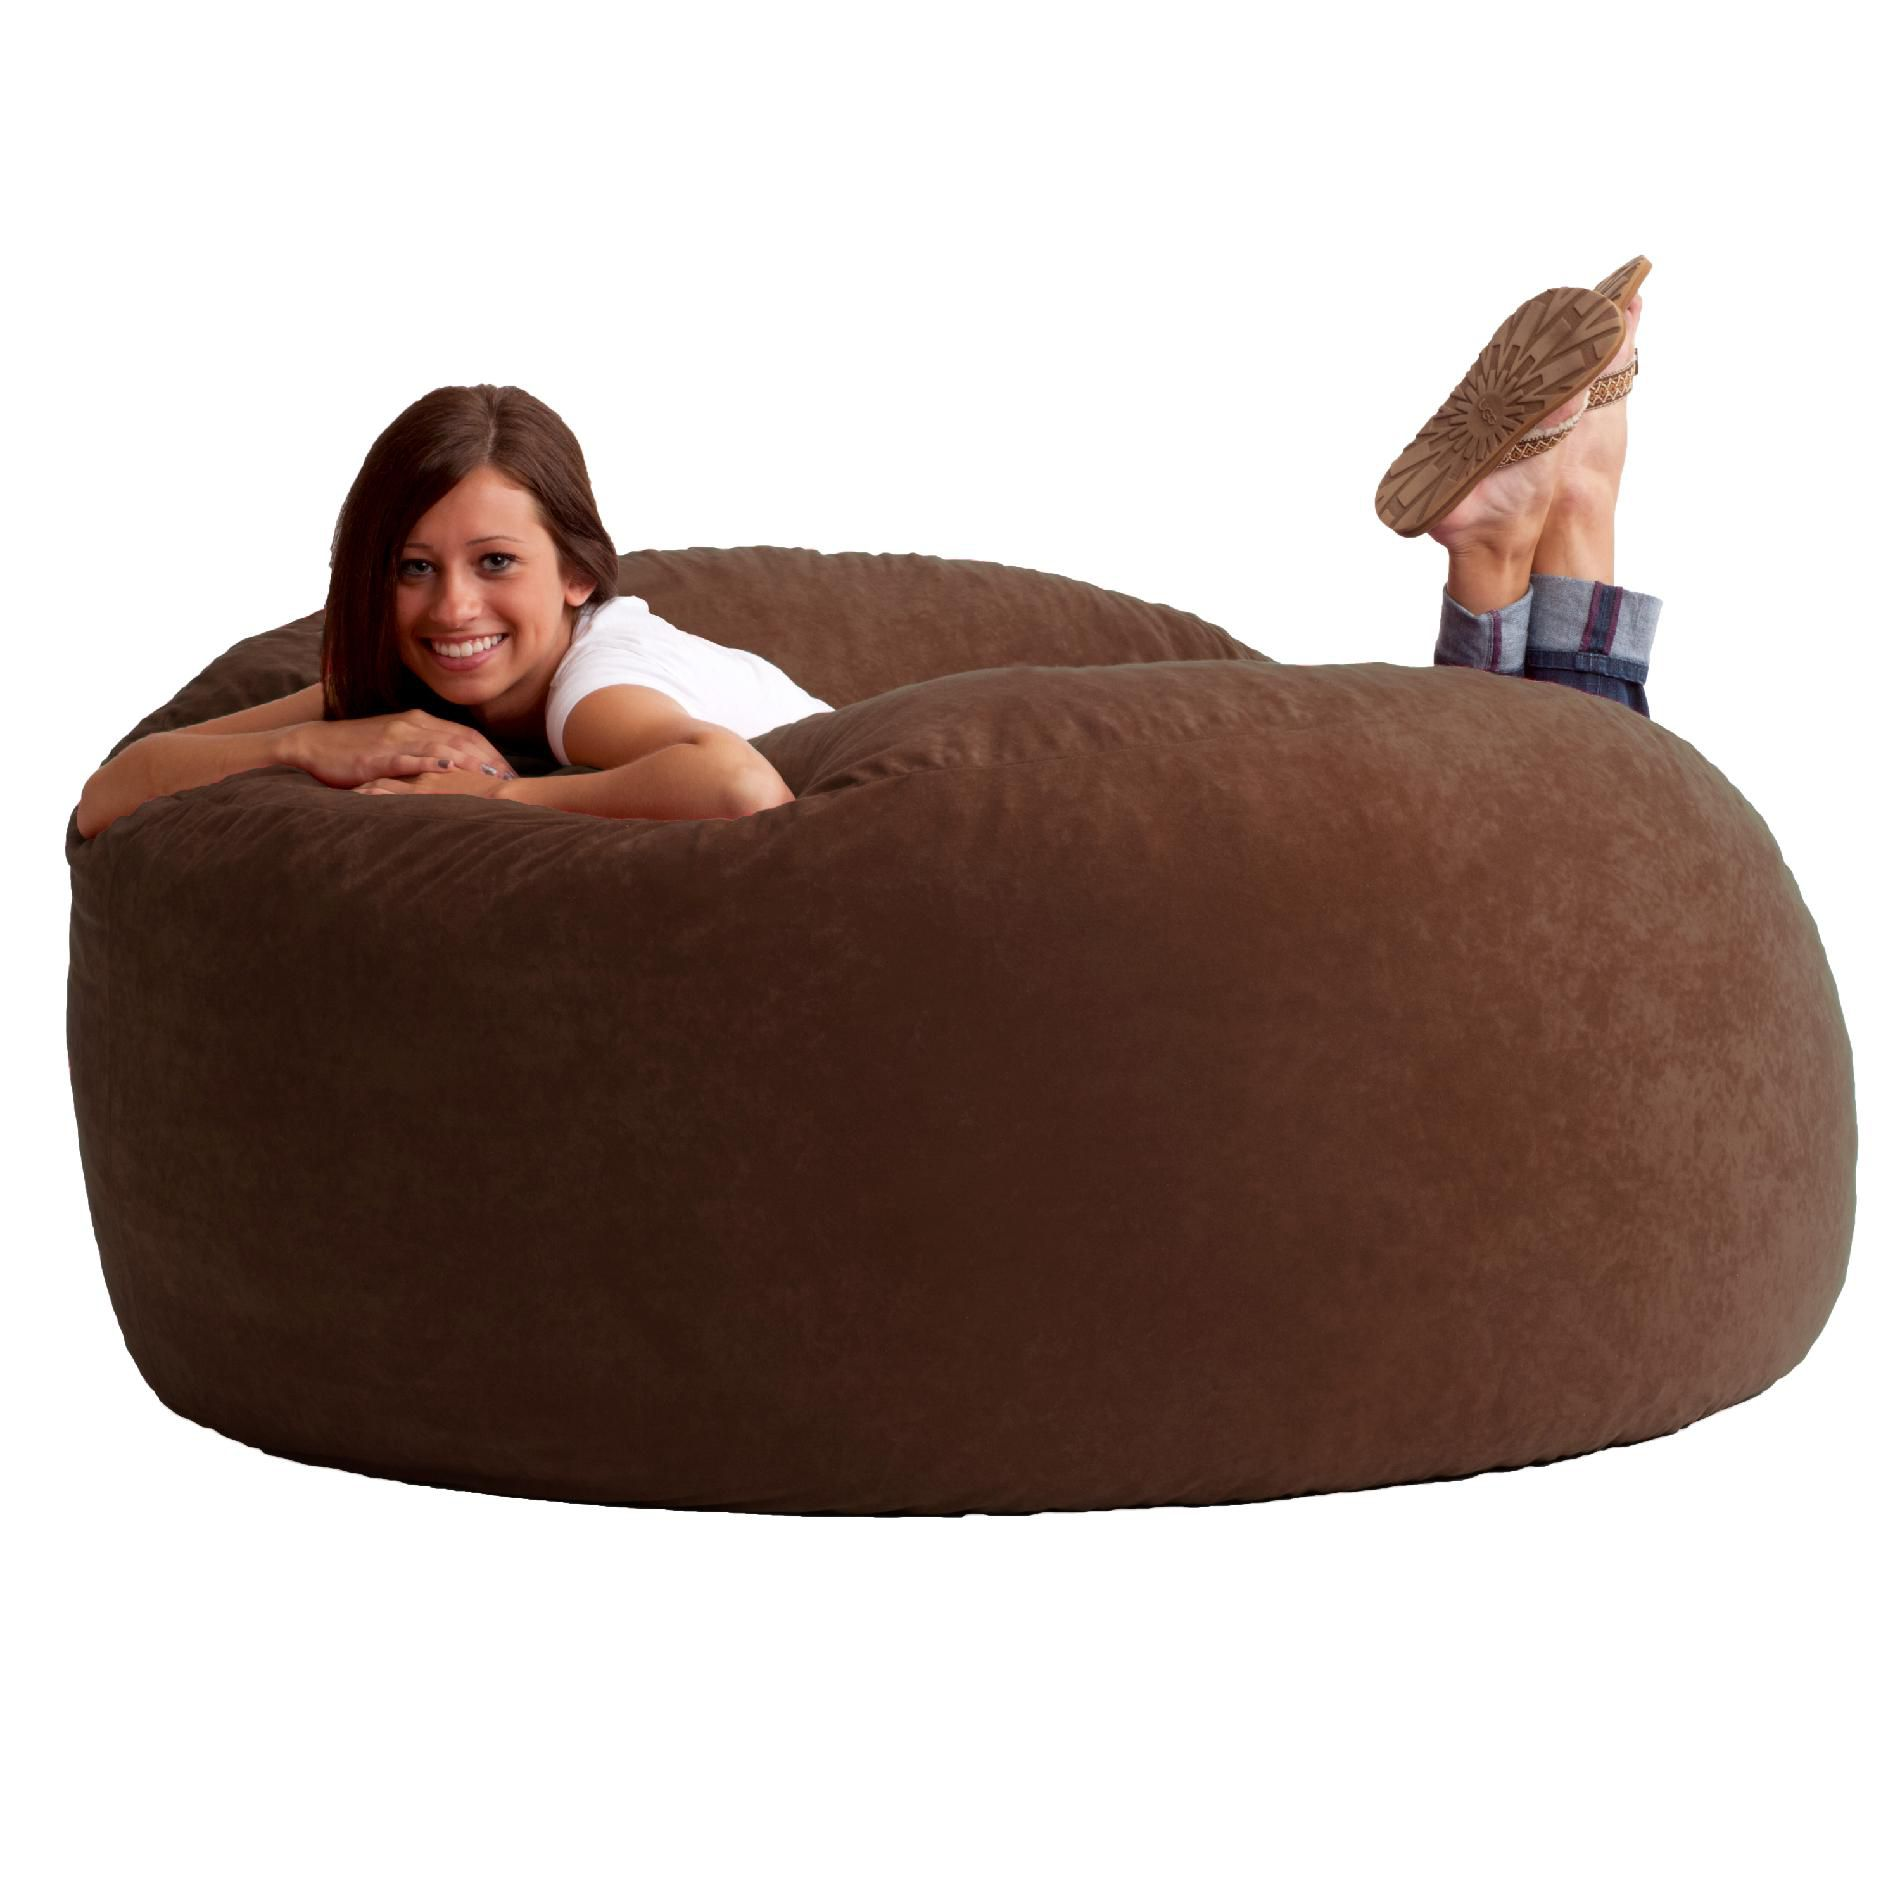 Comfortable Bean Bag Chairs Comfort Research 5 39 King Fuf Bean Bag Chair In Espresso